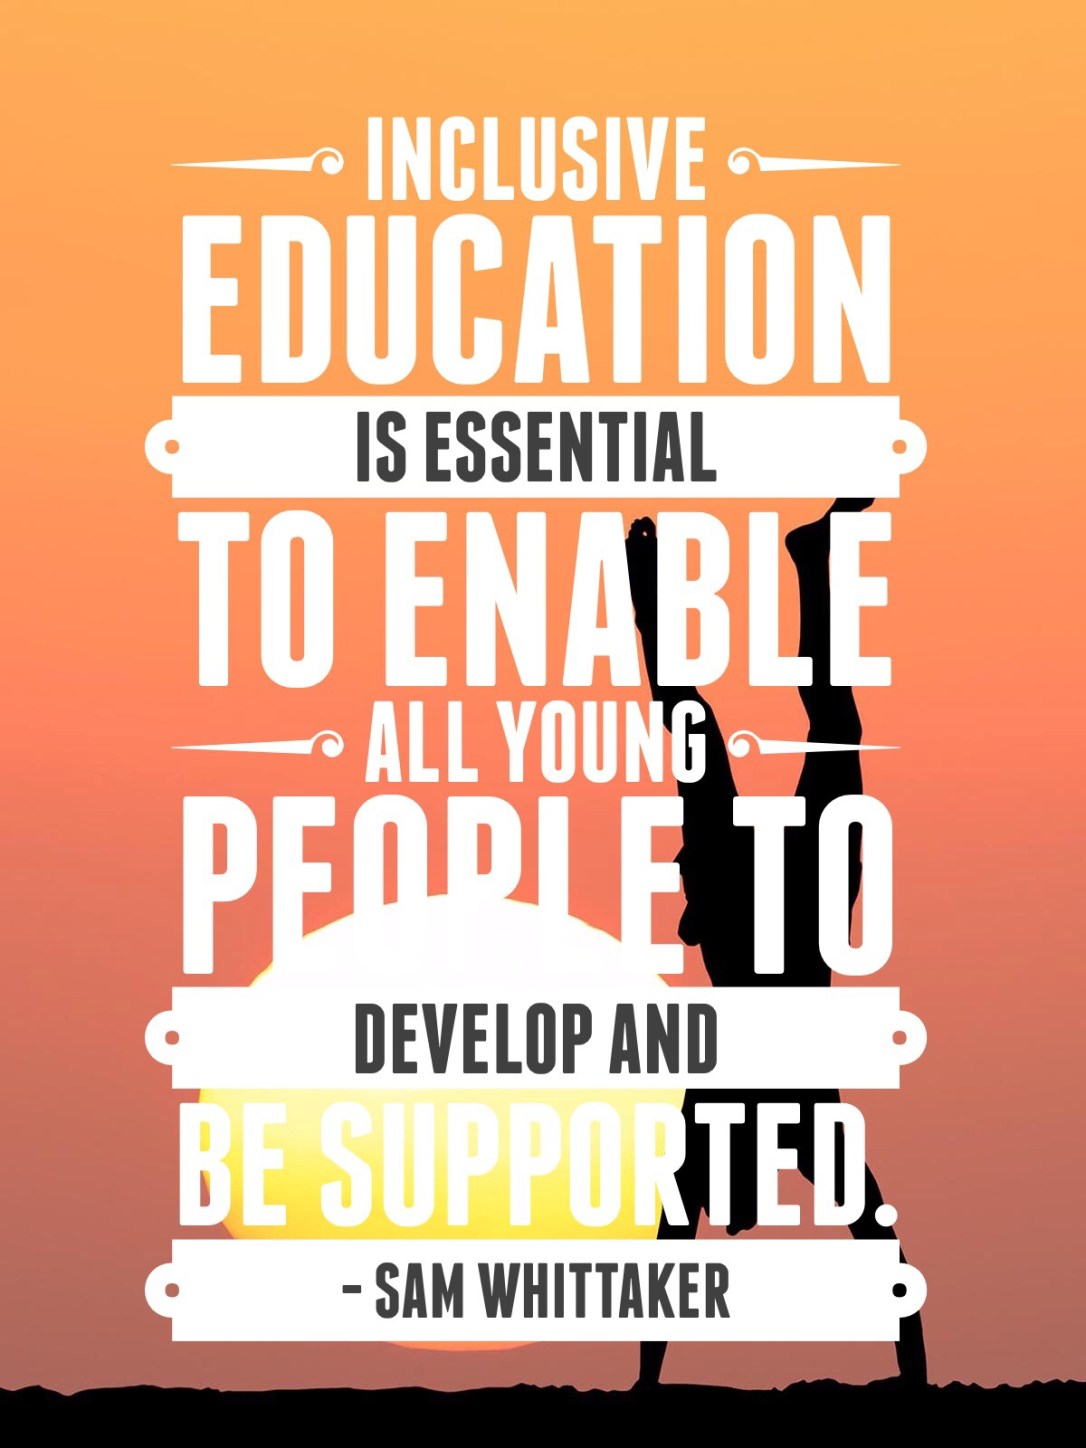 Inclusive education is essential to enable all young people to develop and be supported. - Sam Whittaker